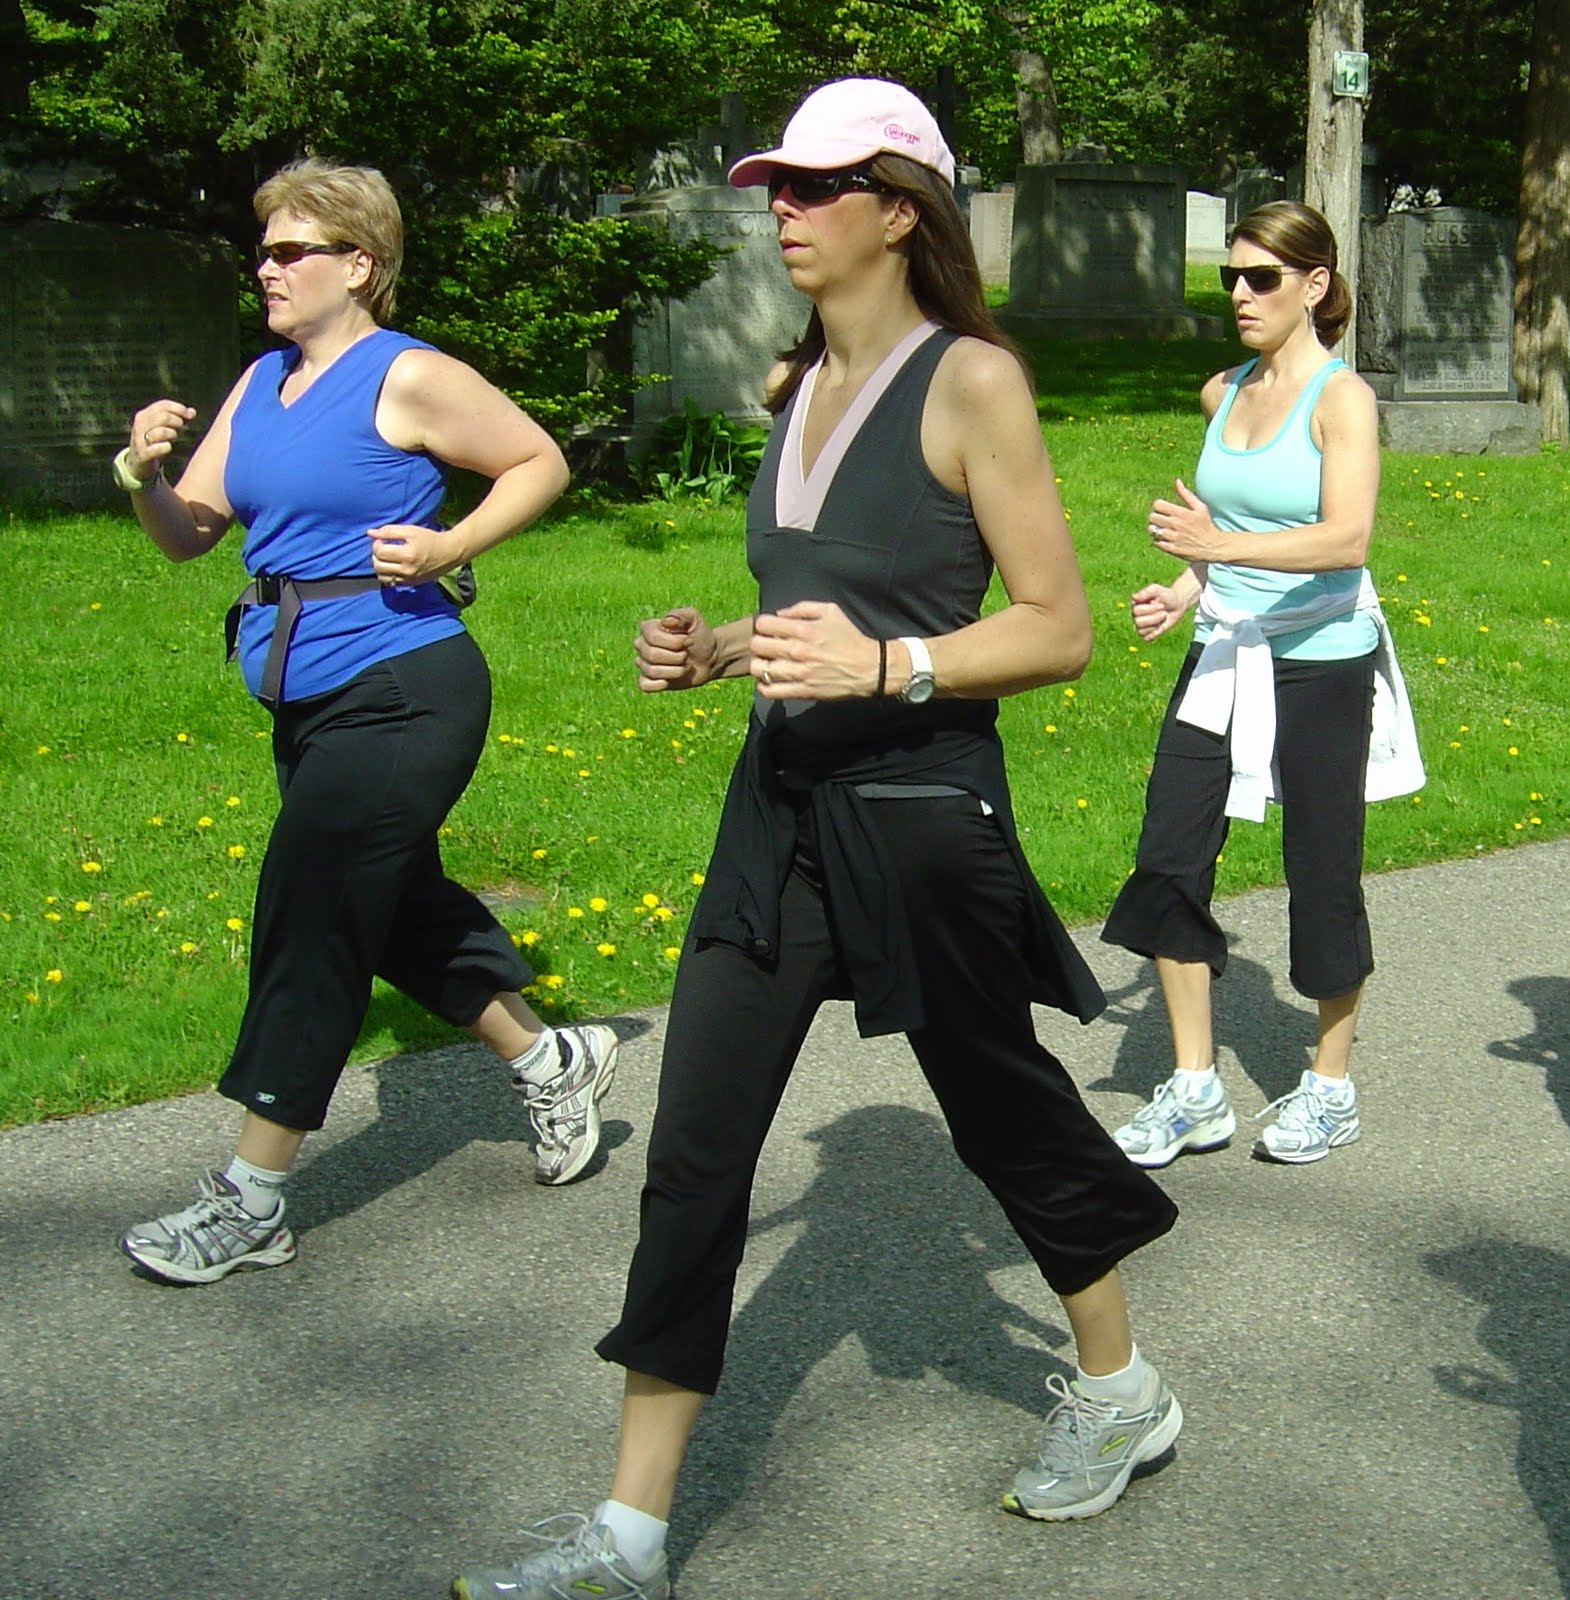 Neat And Five Extra Minutes As An Exercise Habit For Longevity For Grandma